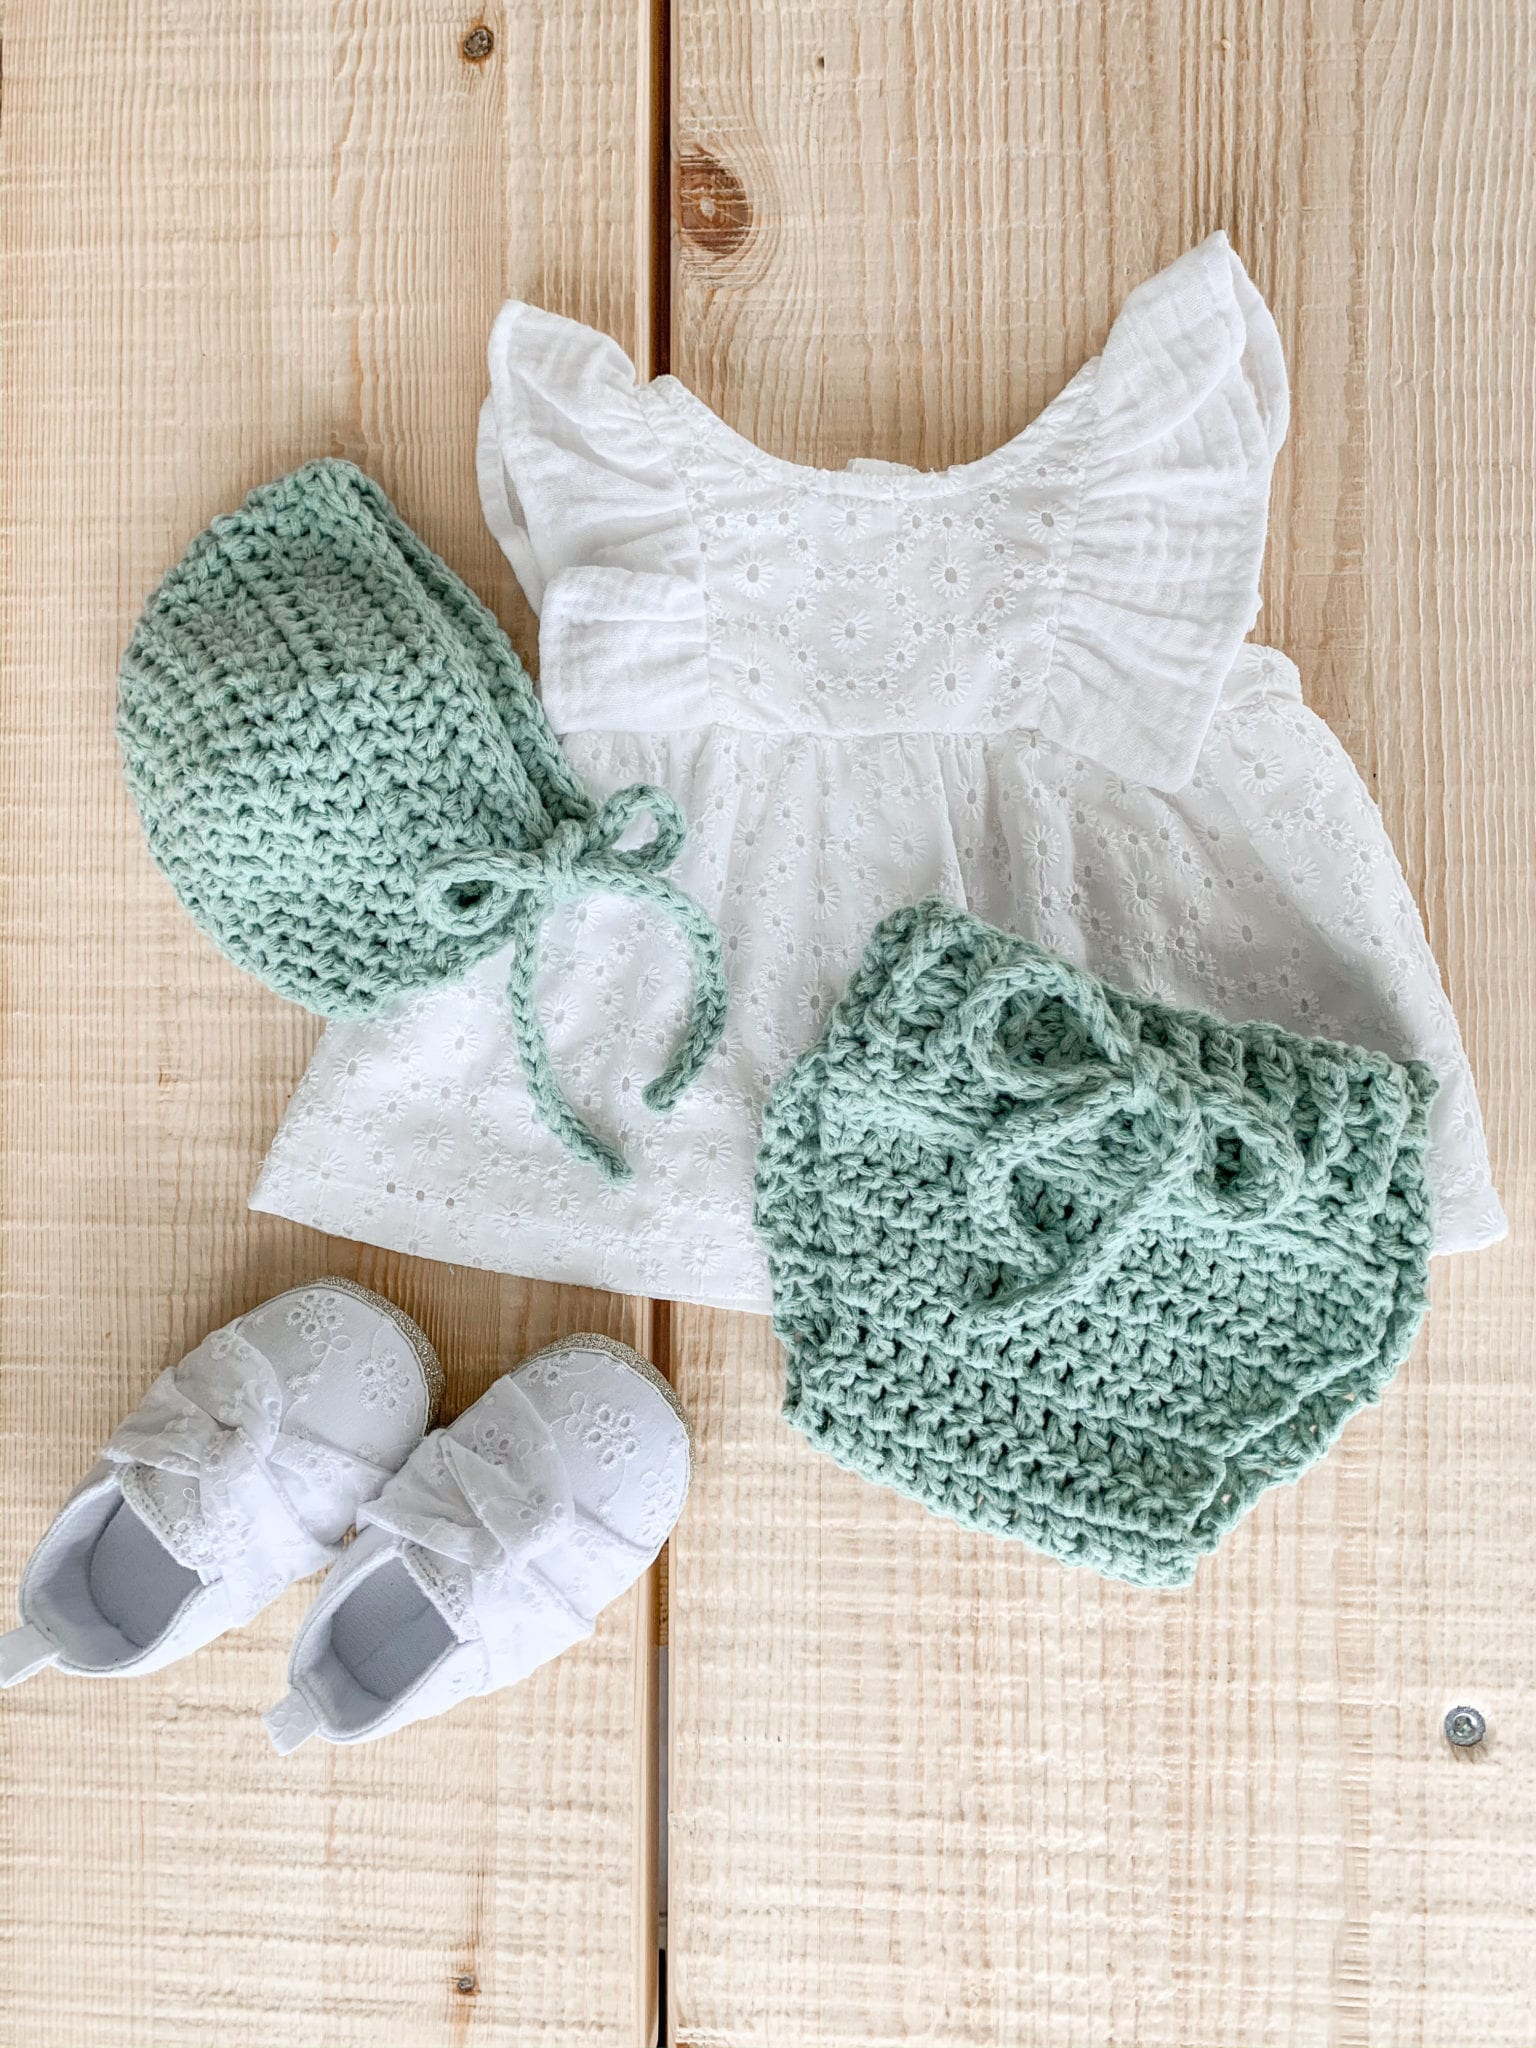 Vintage crochet baby set with classic baby bonnet and baby bloomers.